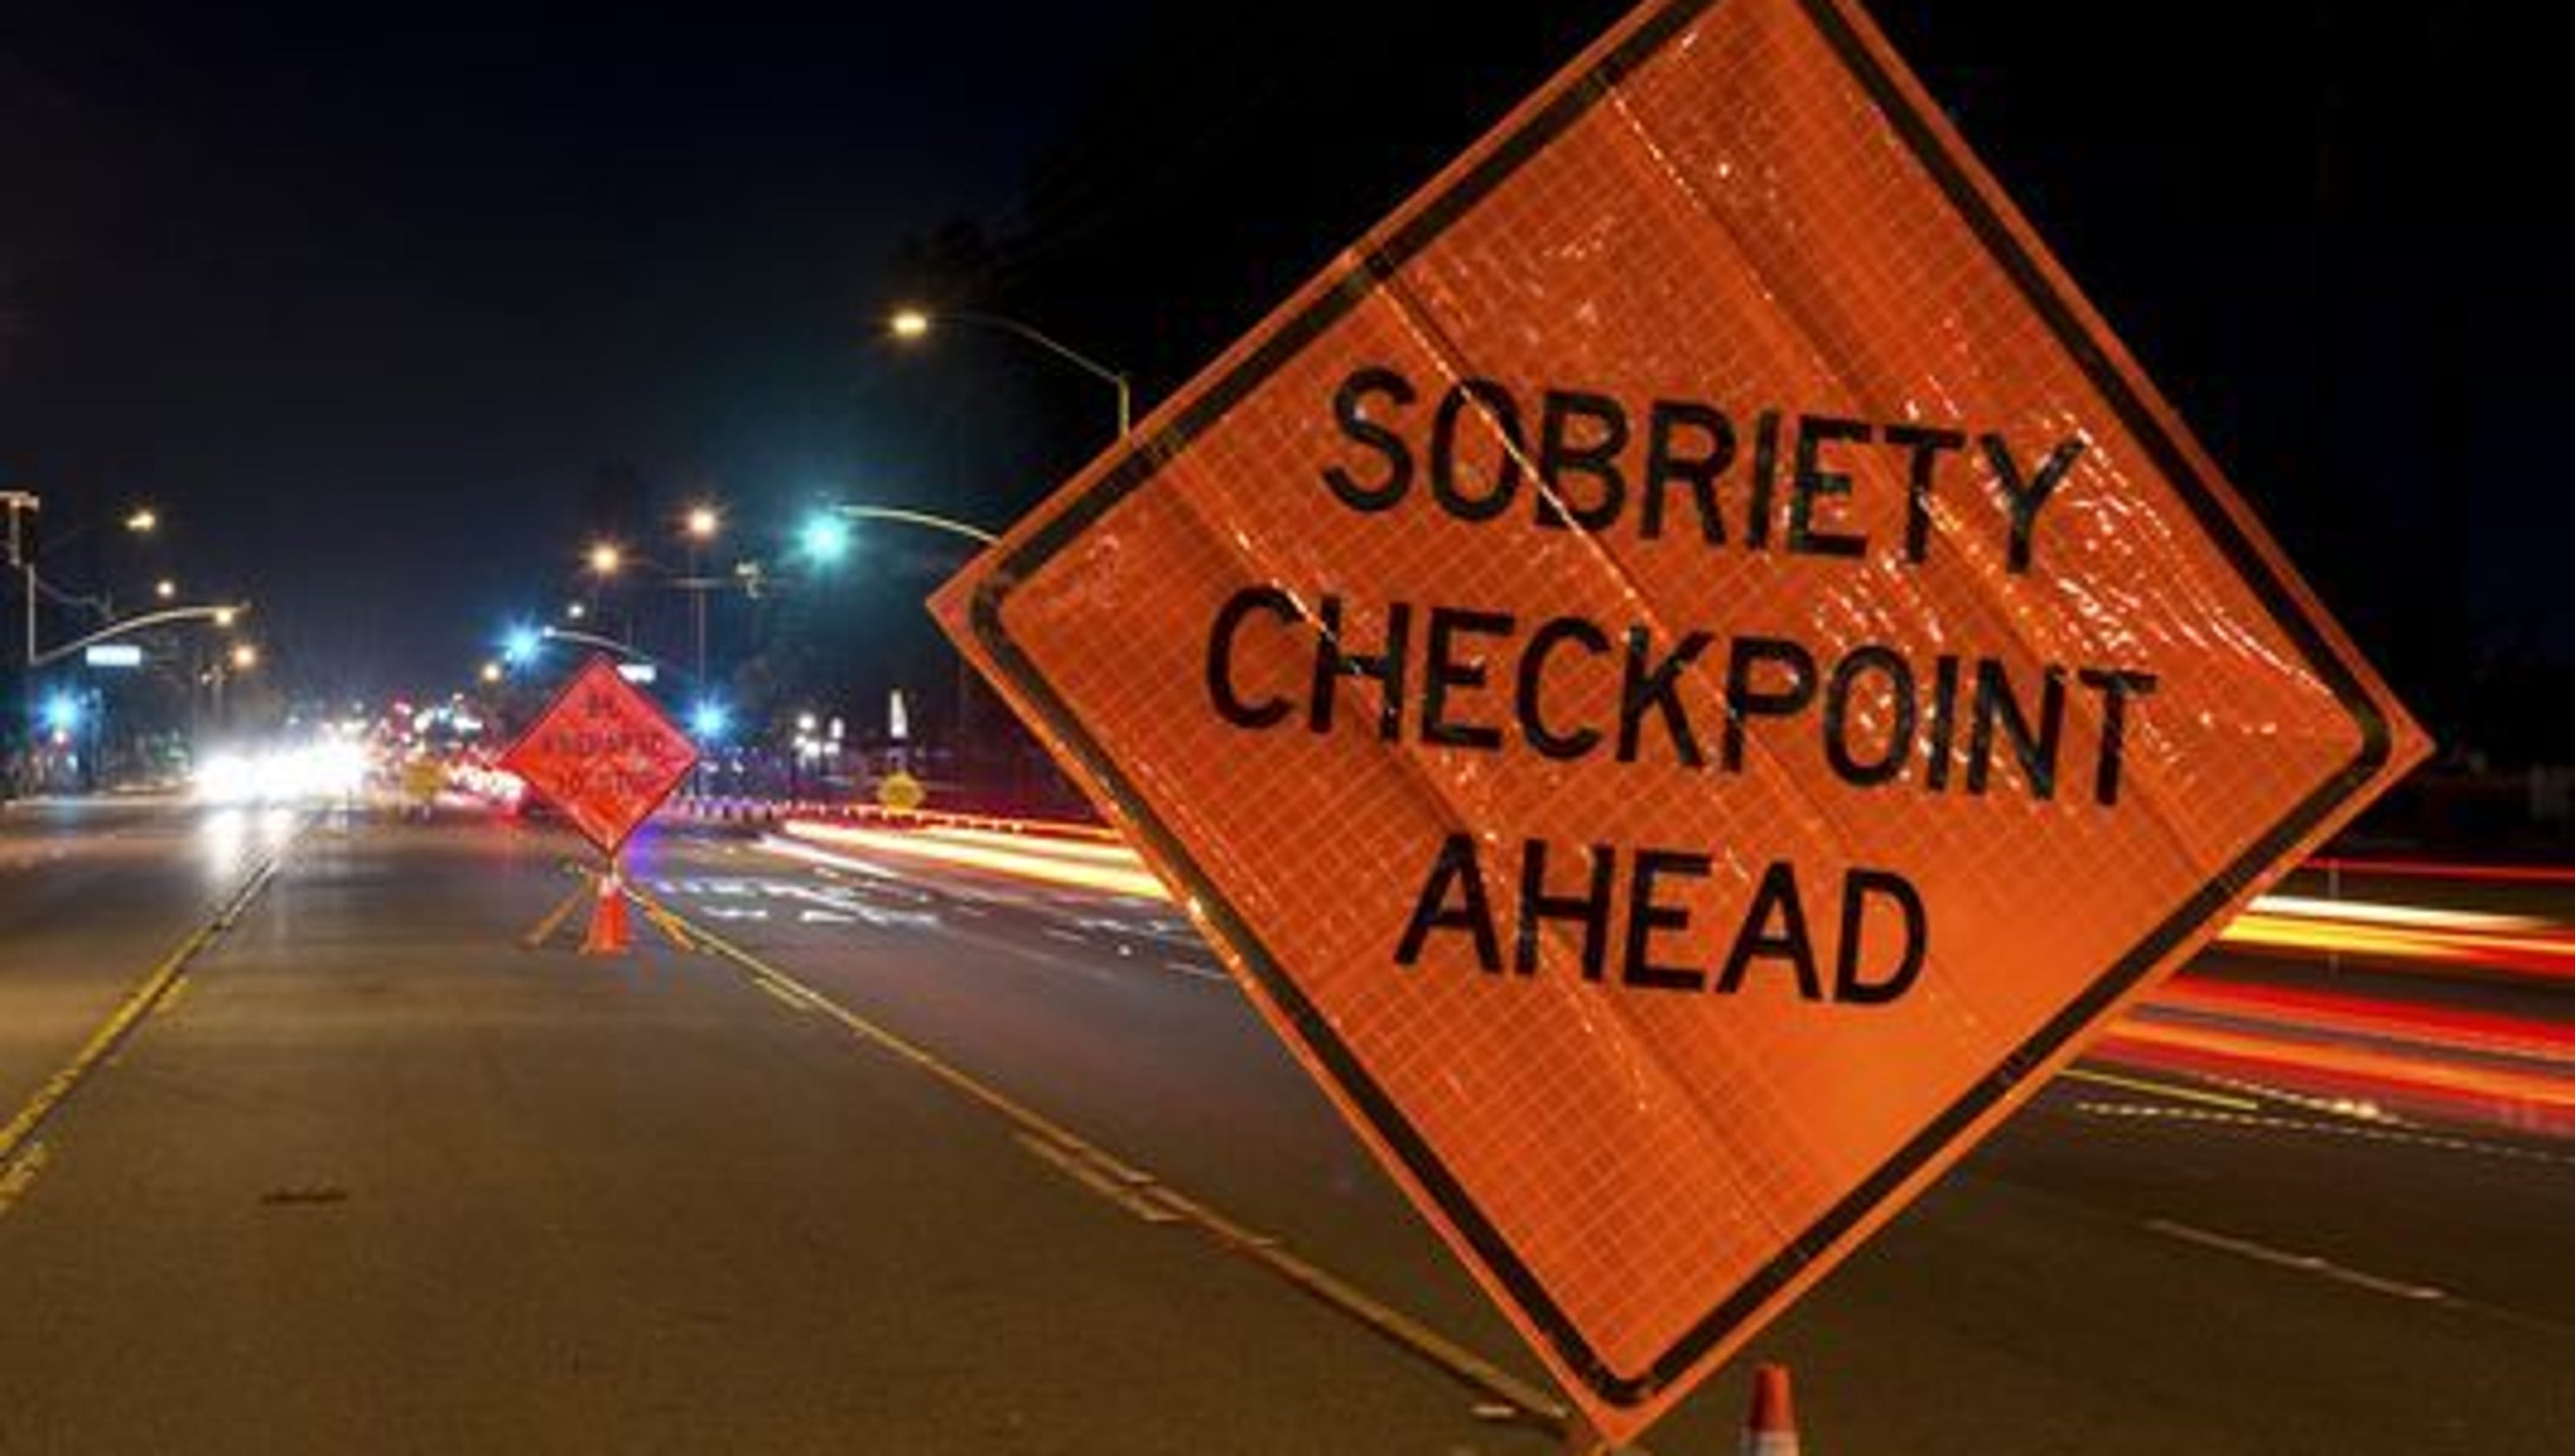 dui checkpoints Driving under the influence (dui), driving while impaired/driving while intoxicated (dwi), drunk driving, operating while intoxicated (owi), operating [a] vehicle under the influence of alcohol or drugs (ovi) in ohio, or drink-driving (uk) is currently the crime or offense of driving or operating a motor vehicle while impaired by alcohol or other drugs (including recreational drugs and those.